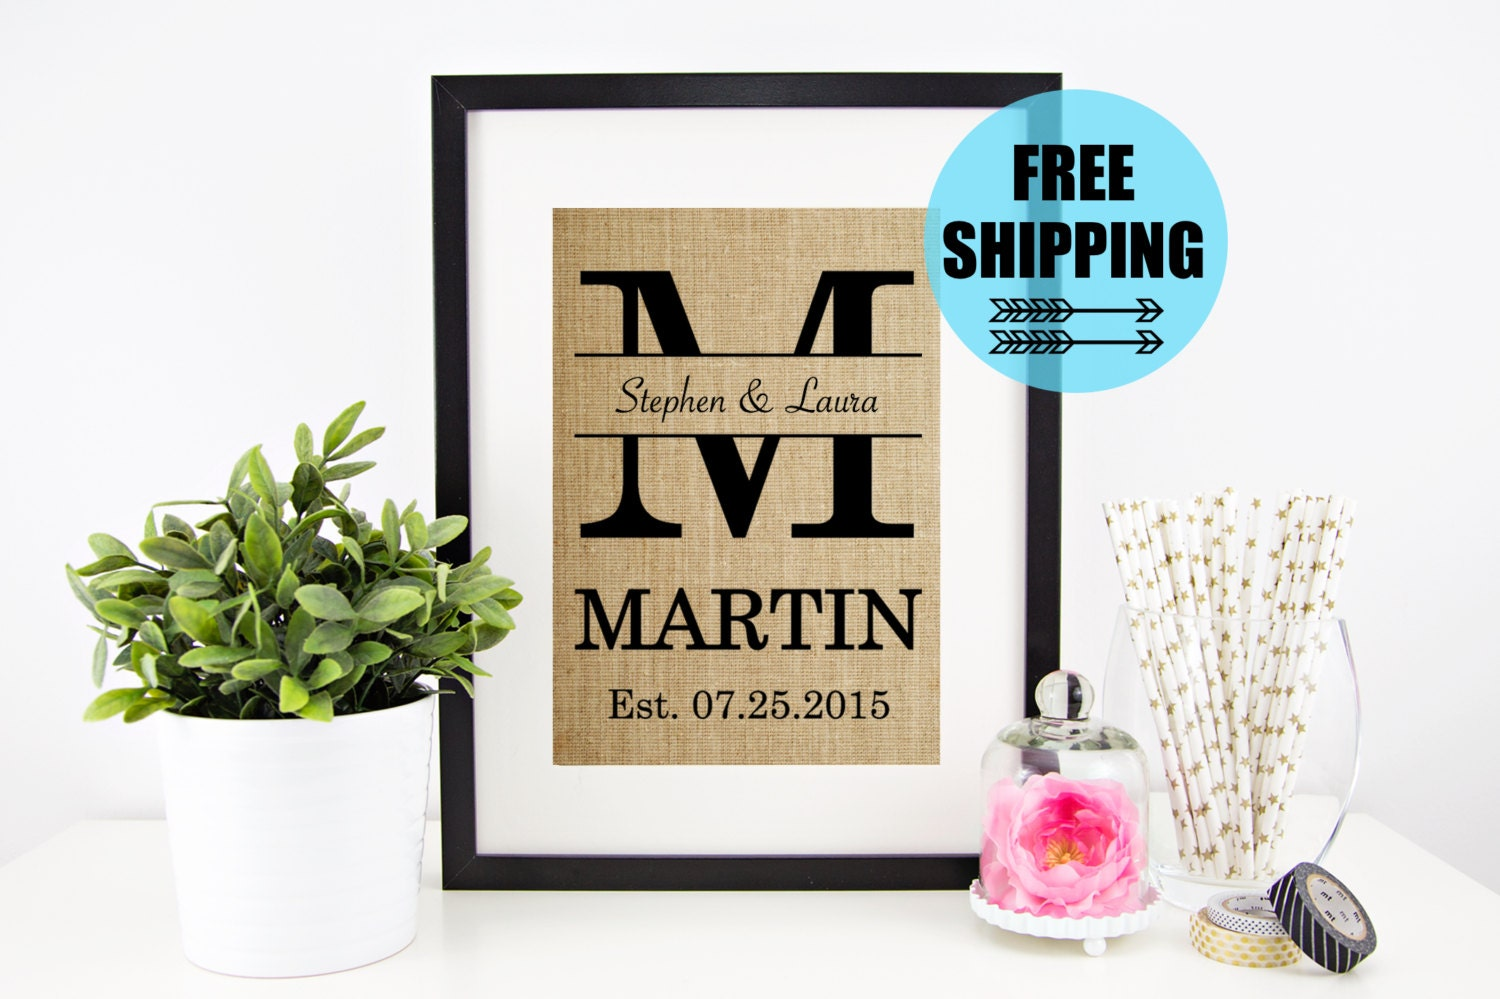 Monogrammed Wedding Gifts For Couple : ON SALE Personalized Wedding Gift for Couple Bridal Shower